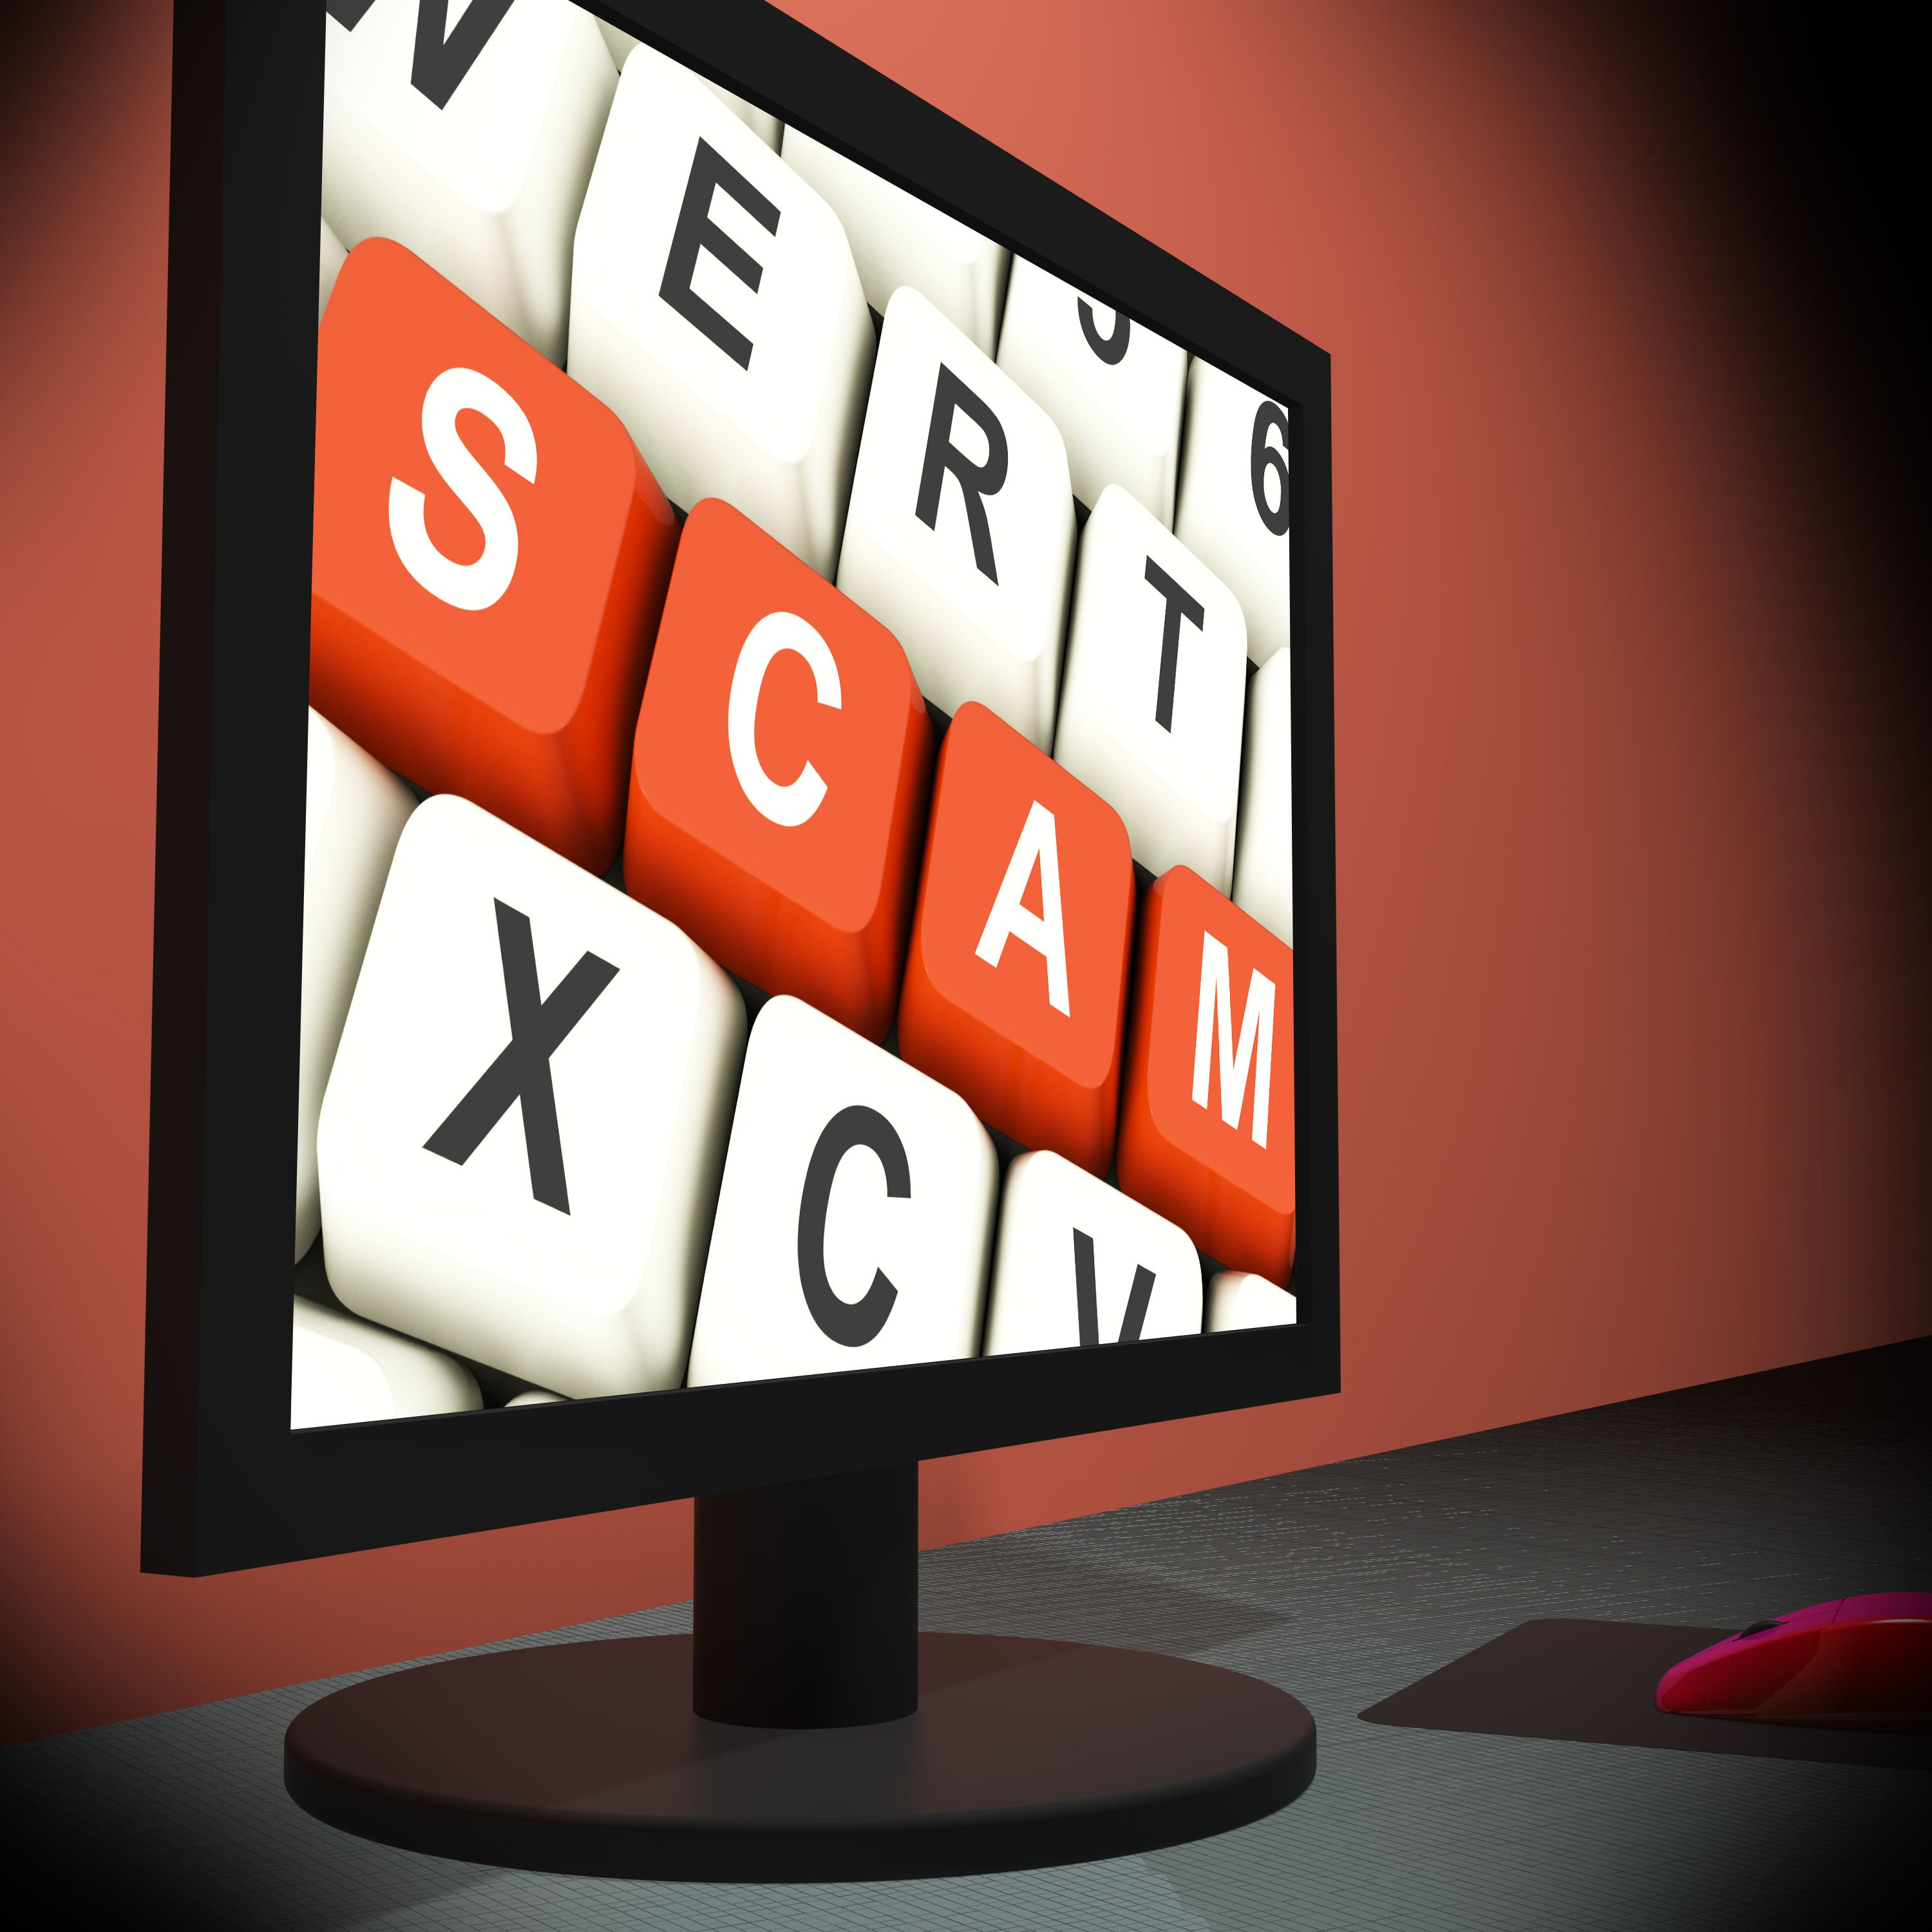 EXPERTS DEVISED NEW TOOL EVALUATING ONLINE HEALTH AD SCAMS